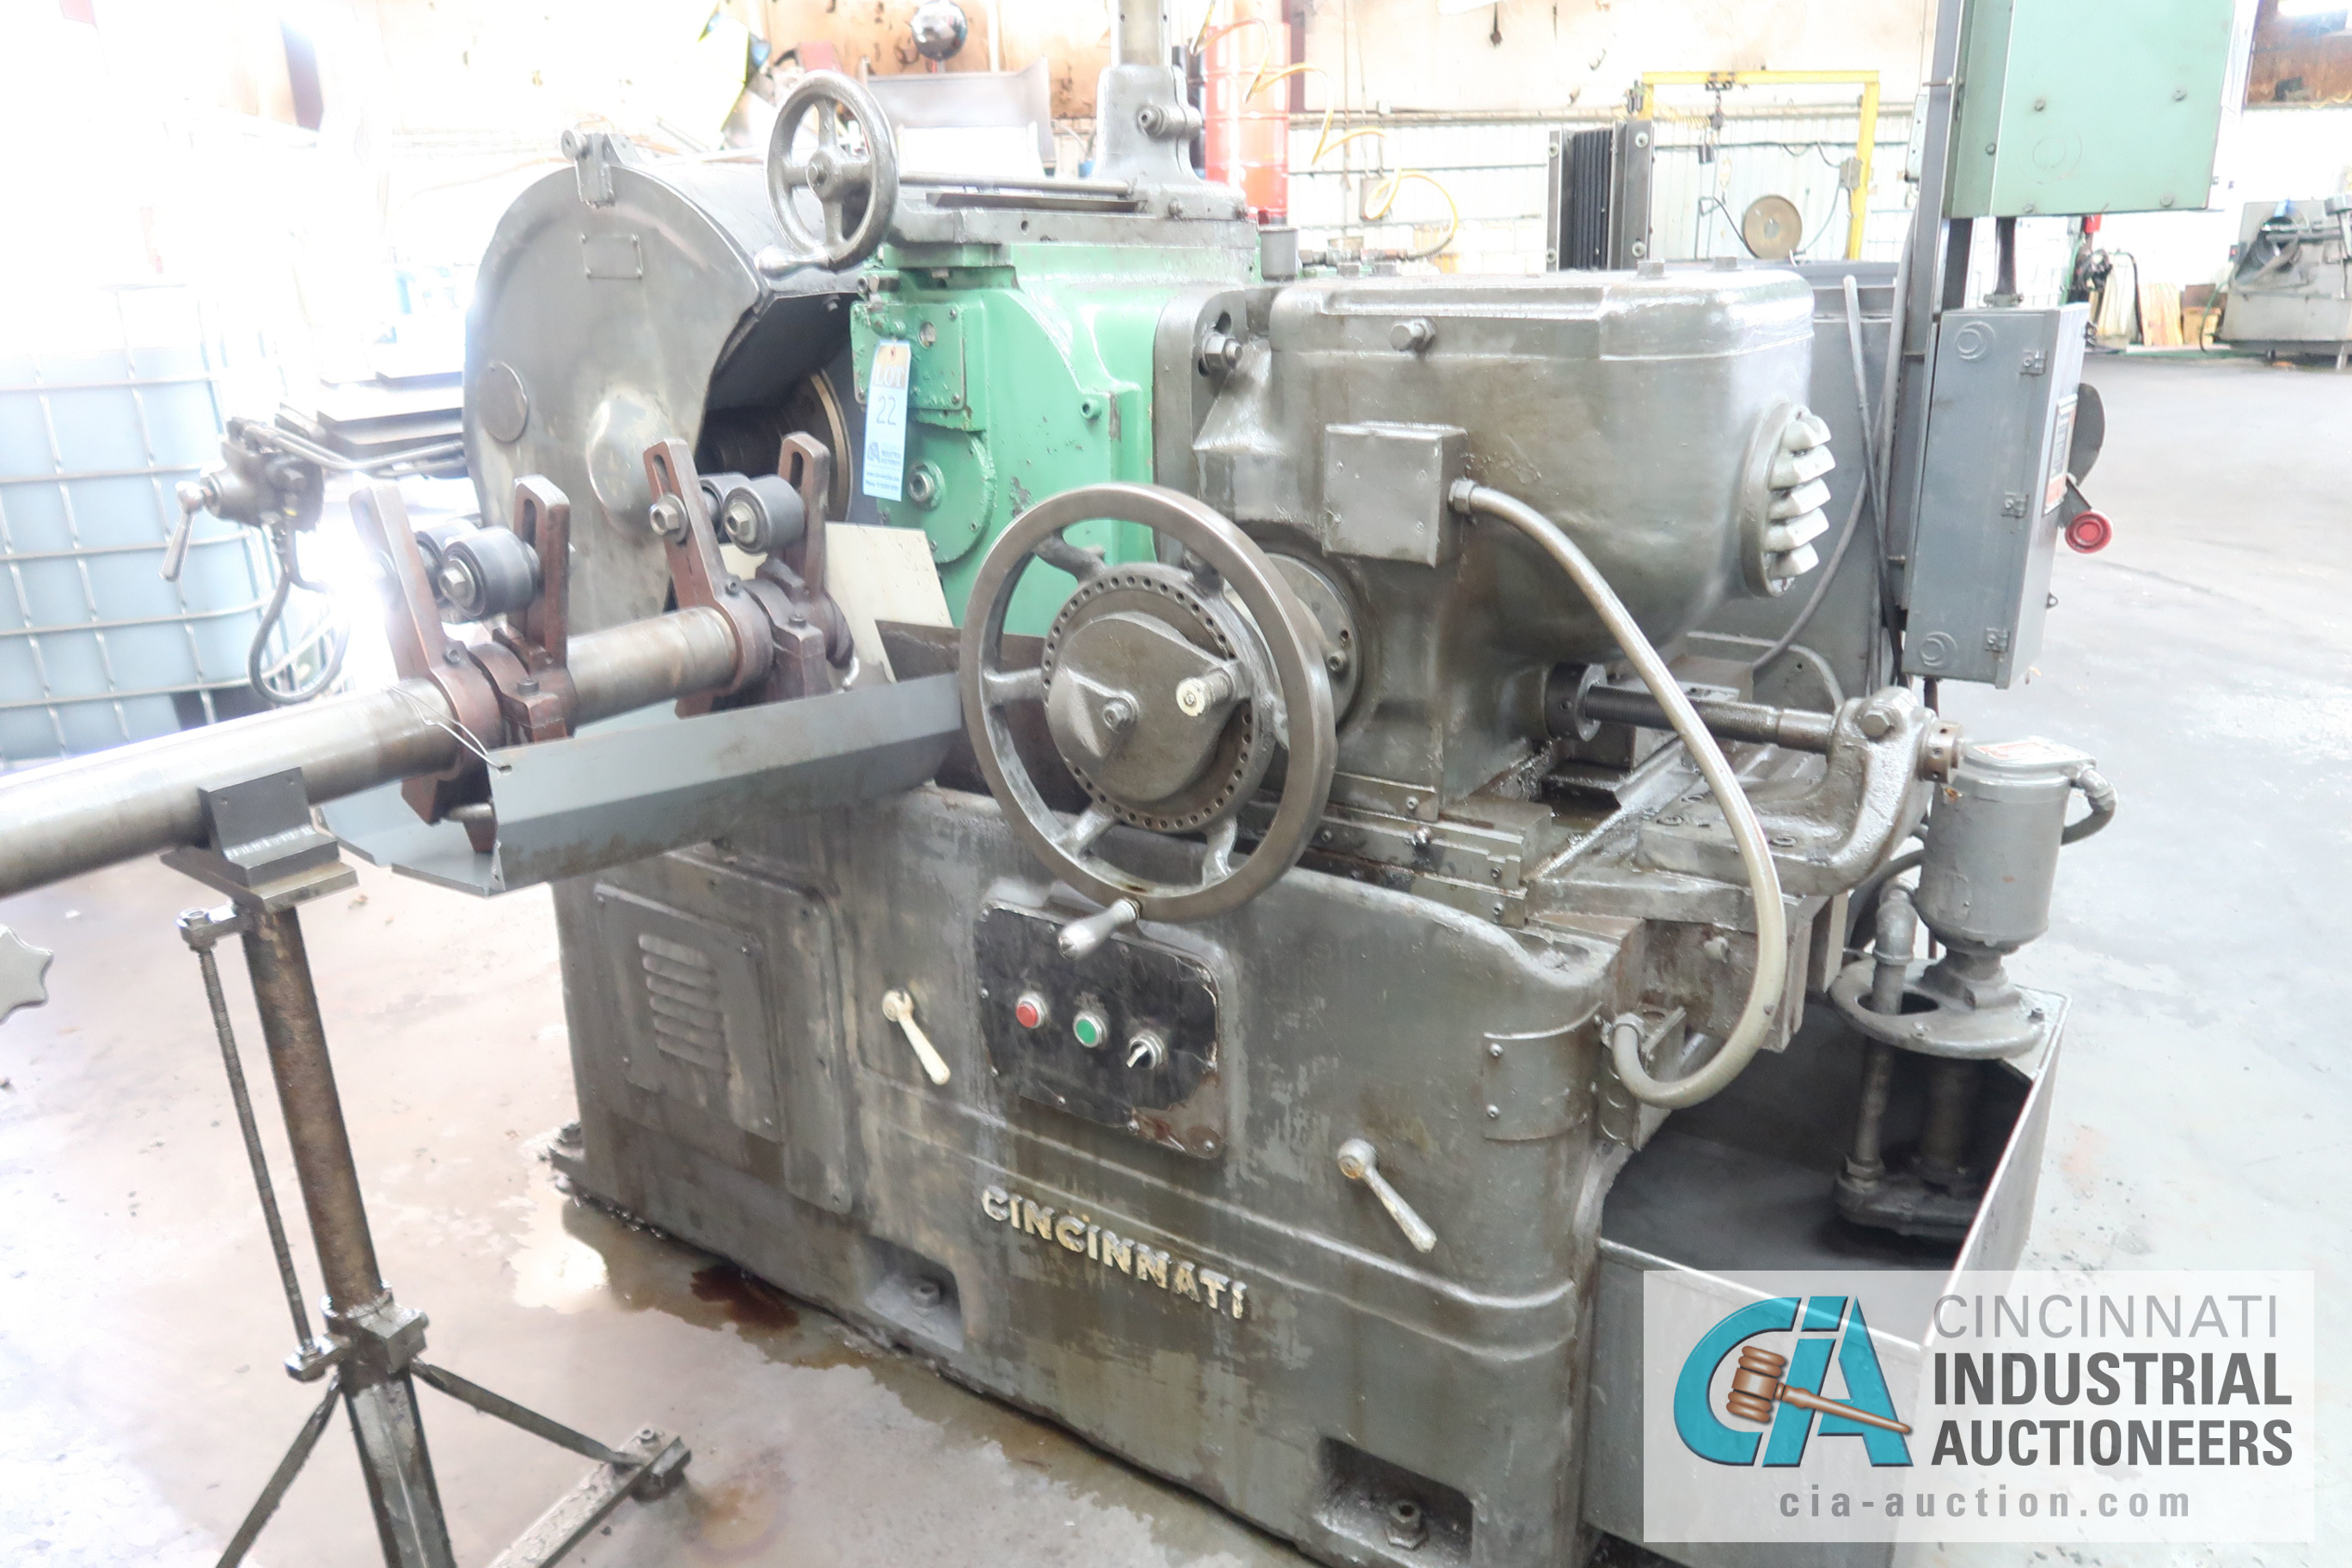 CINCINNATI MODEL 3 CENTERLESS GRINDER; S/N 3M3H5A-37 WITH INFEED AND OUTFEED CONVEYORS